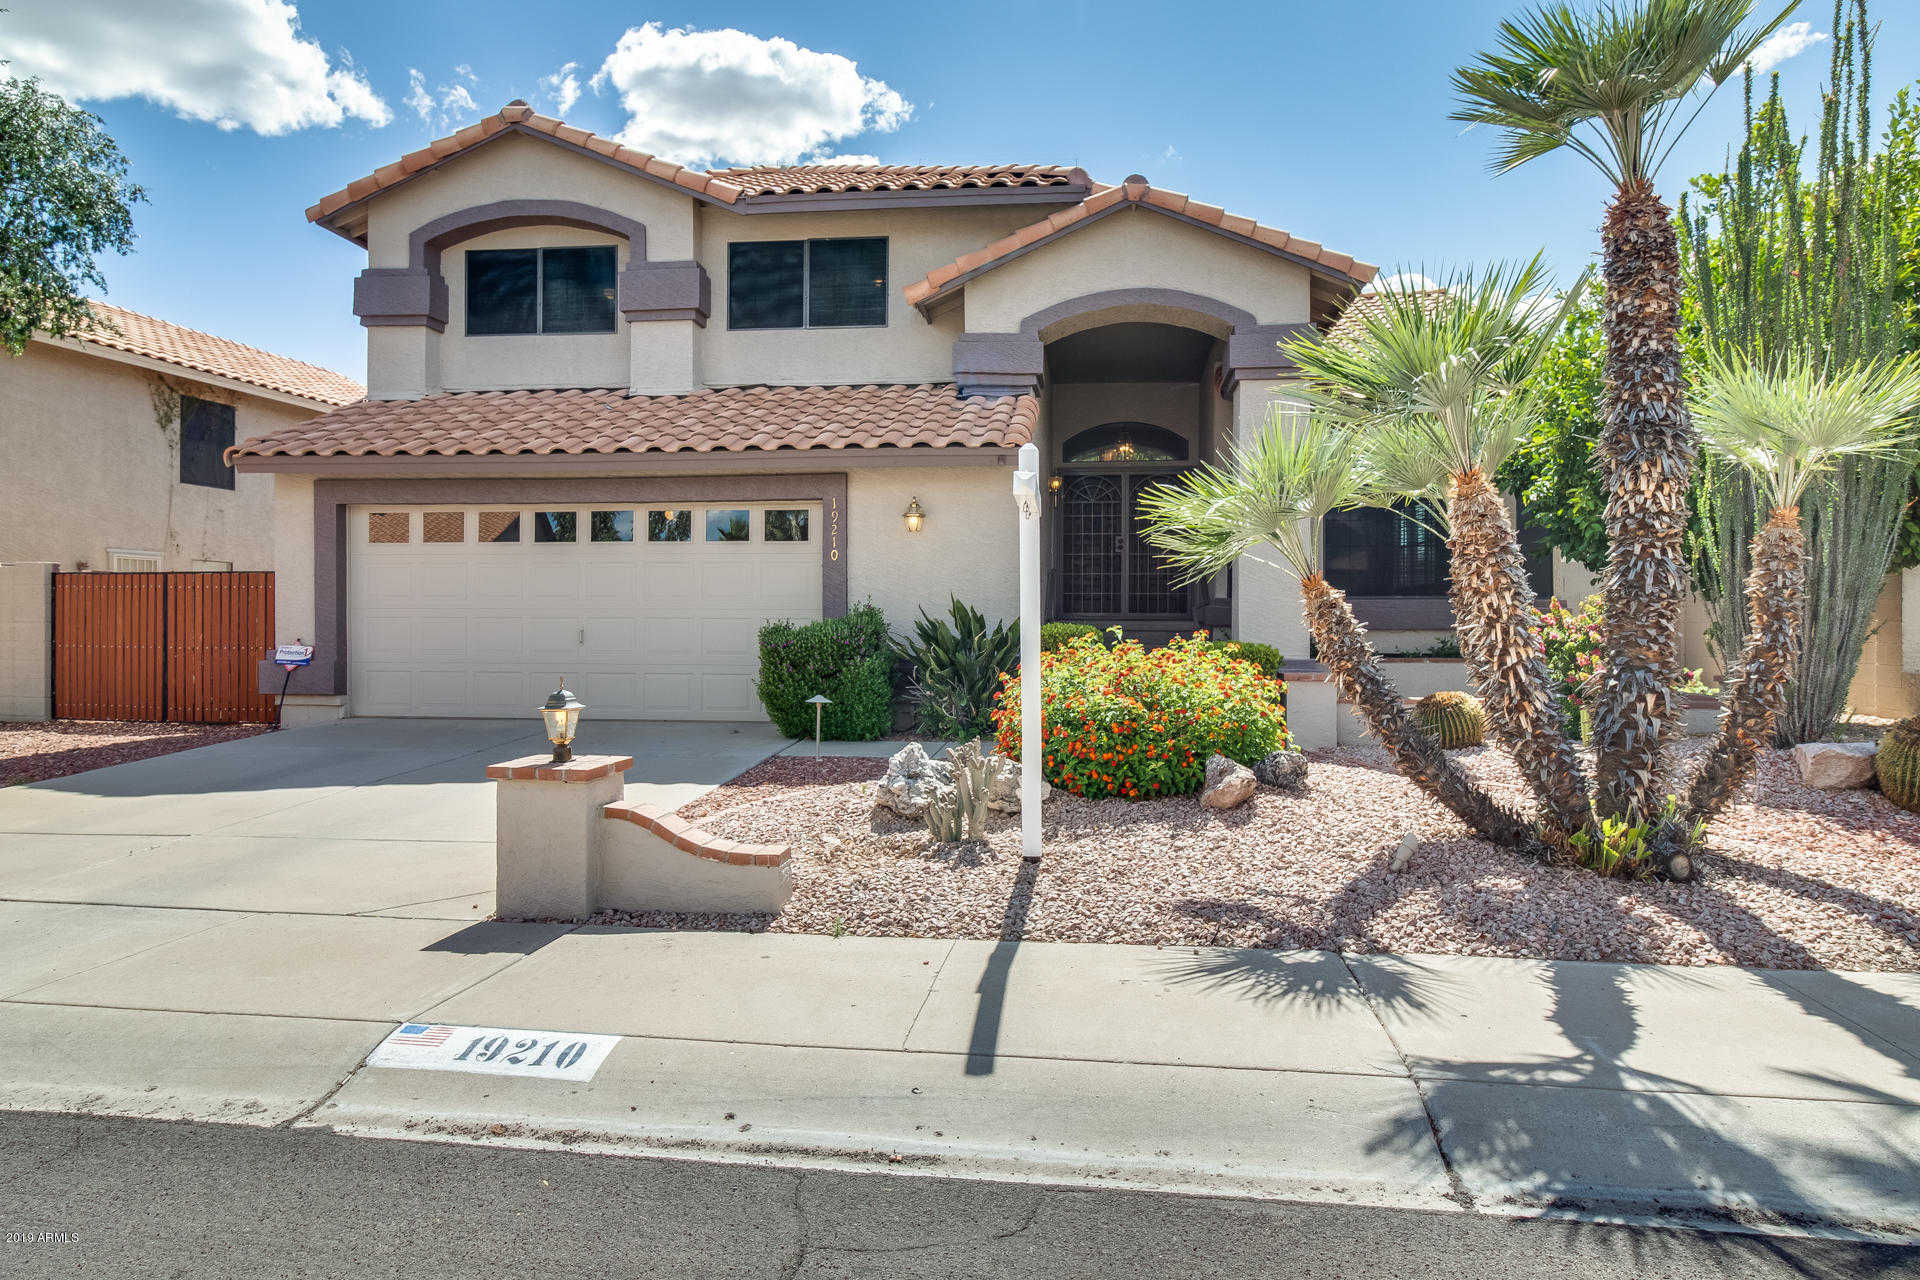 $390,000 - 5Br/3Ba - Home for Sale in Arrowhead Ranch, Glendale